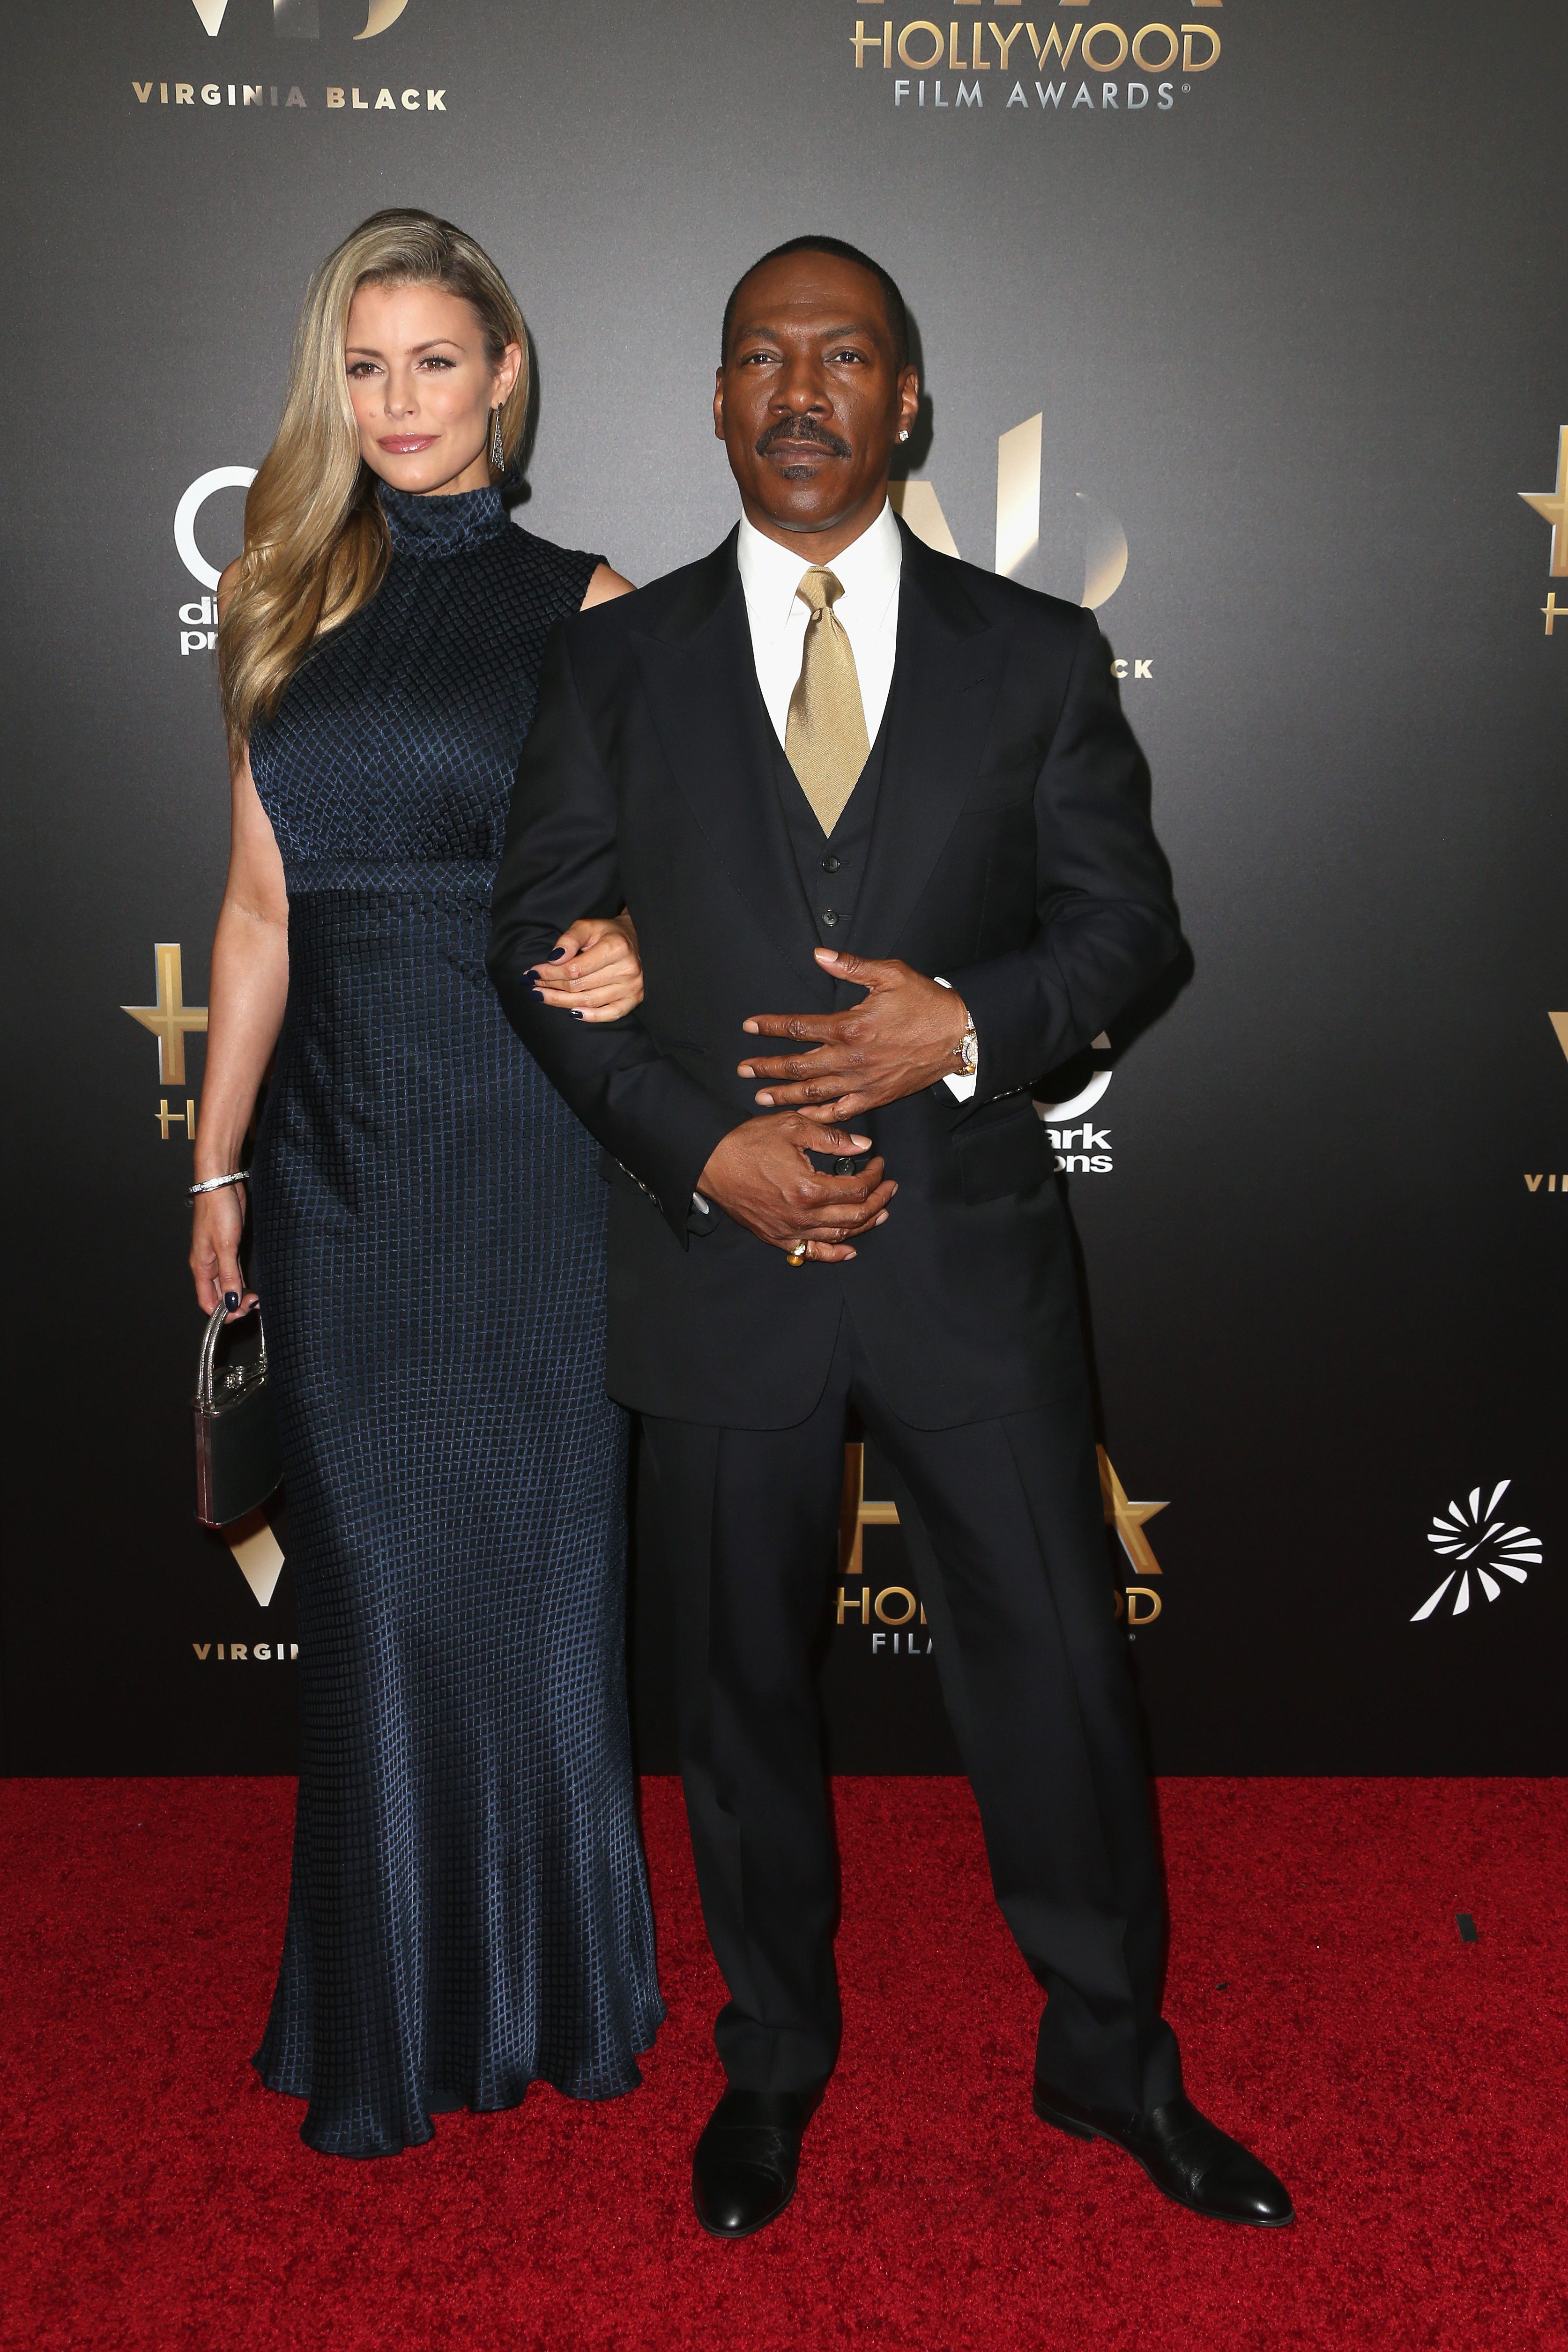 Actors Paige Butcher (L) and Eddie Murphy attend the 20th Annual Hollywood Film Awards on November 6, 2016 in Beverly Hills, California. (Photo by Frederick M. Brown/Getty Images)